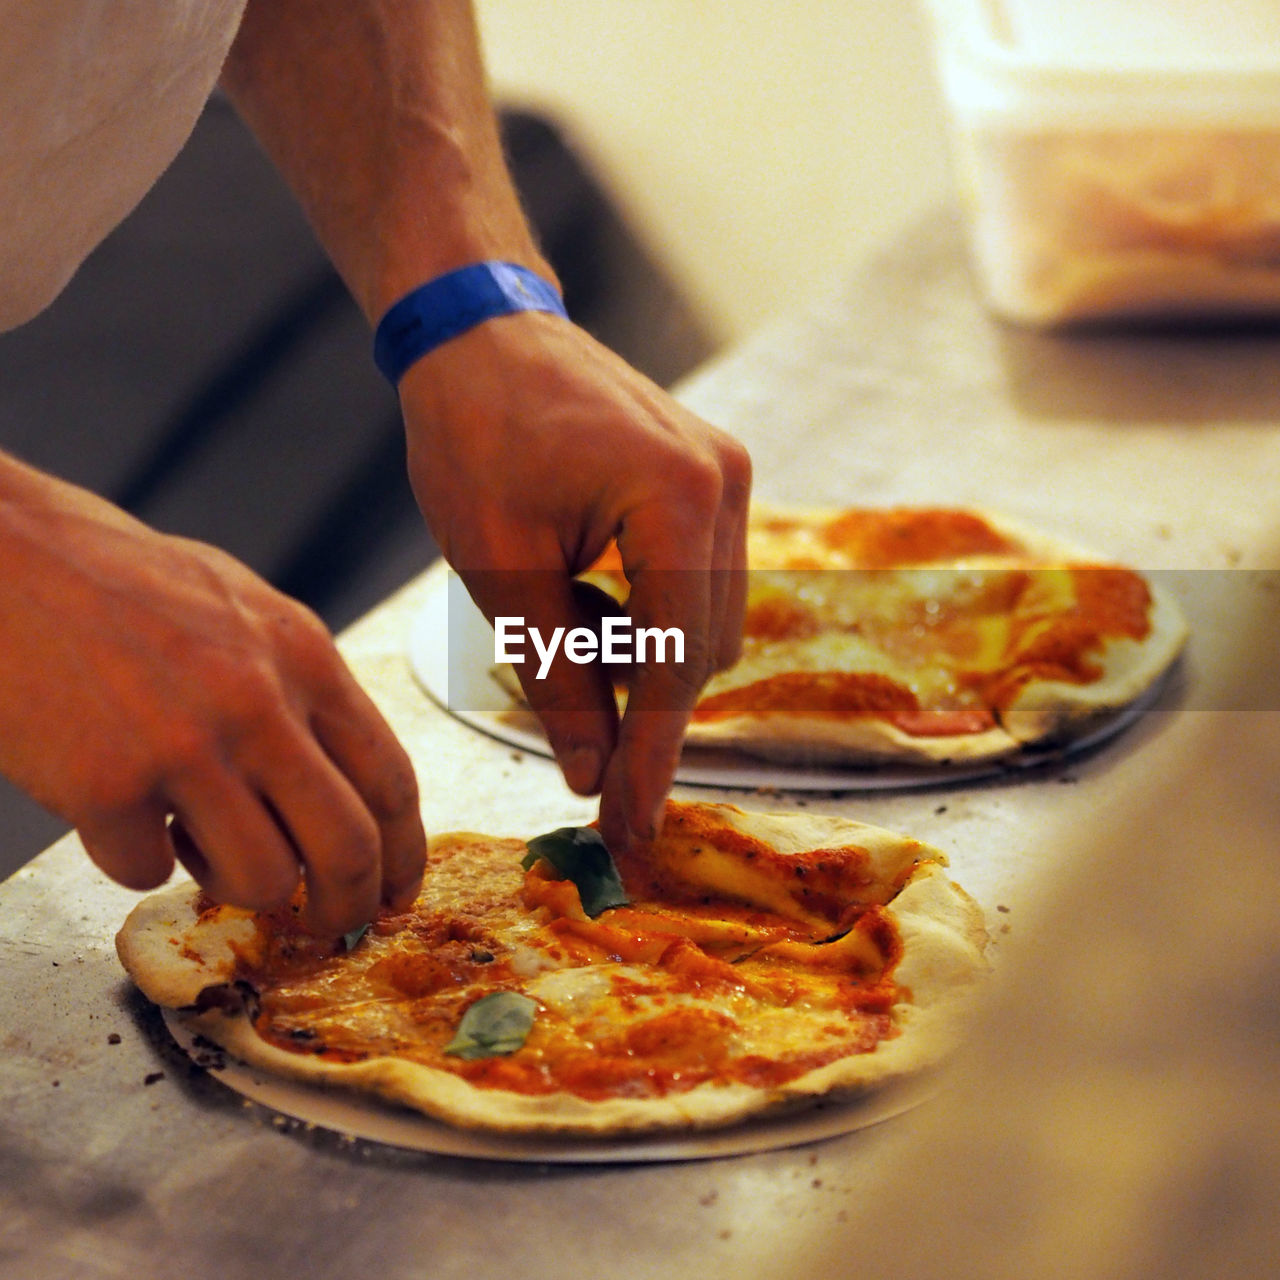 food and drink, food, pizza, human hand, hand, one person, indoors, freshness, unhealthy eating, table, human body part, real people, meal, holding, slice, men, cheese, ready-to-eat, business, preparing food, temptation, chef